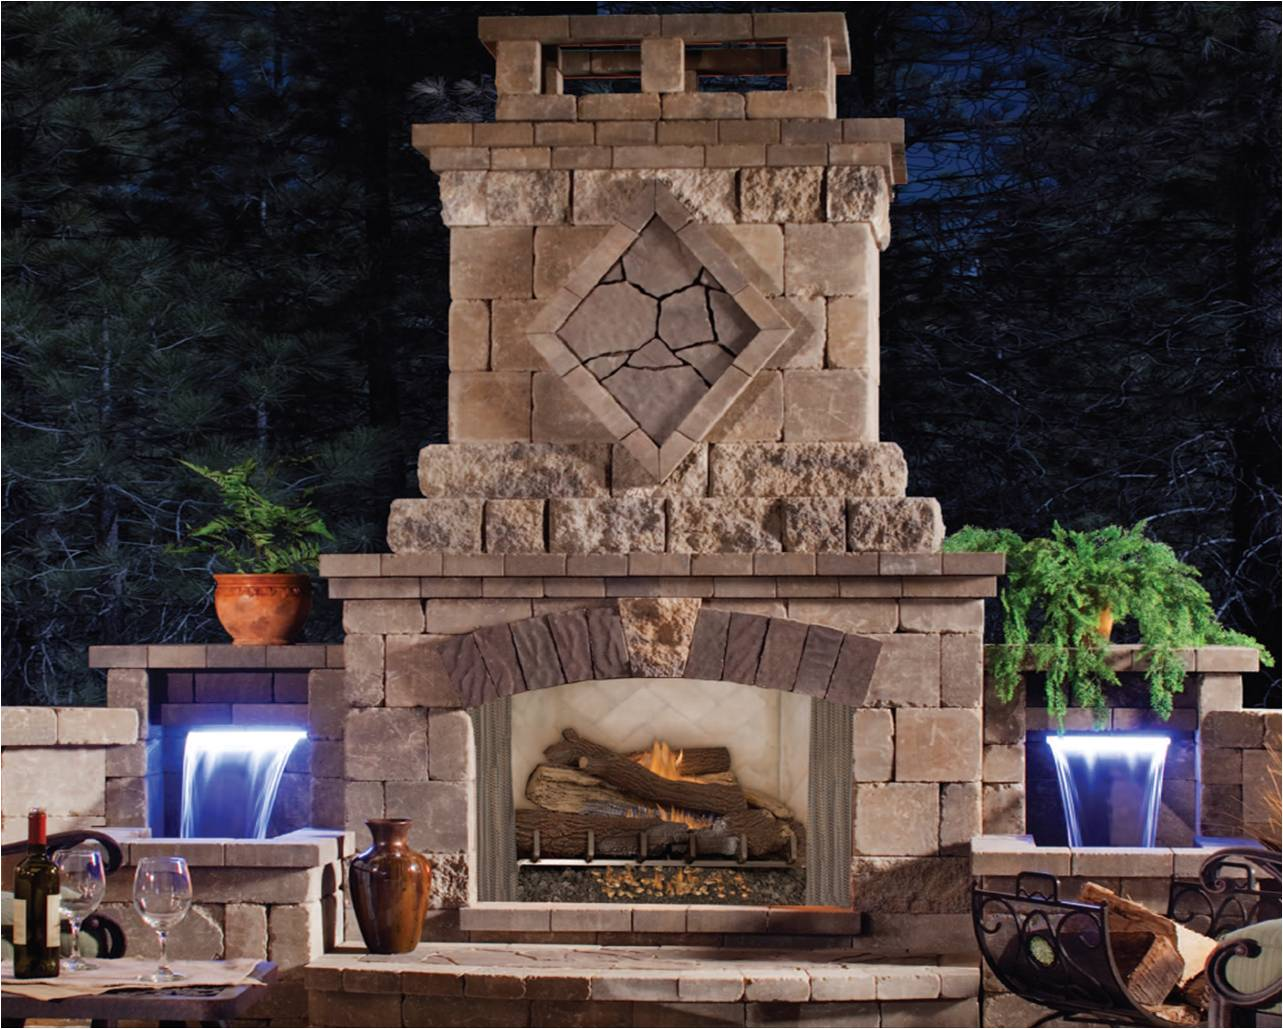 Top 21 designs for the outdoor fireplace qnud Outdoor fireplace design ideas